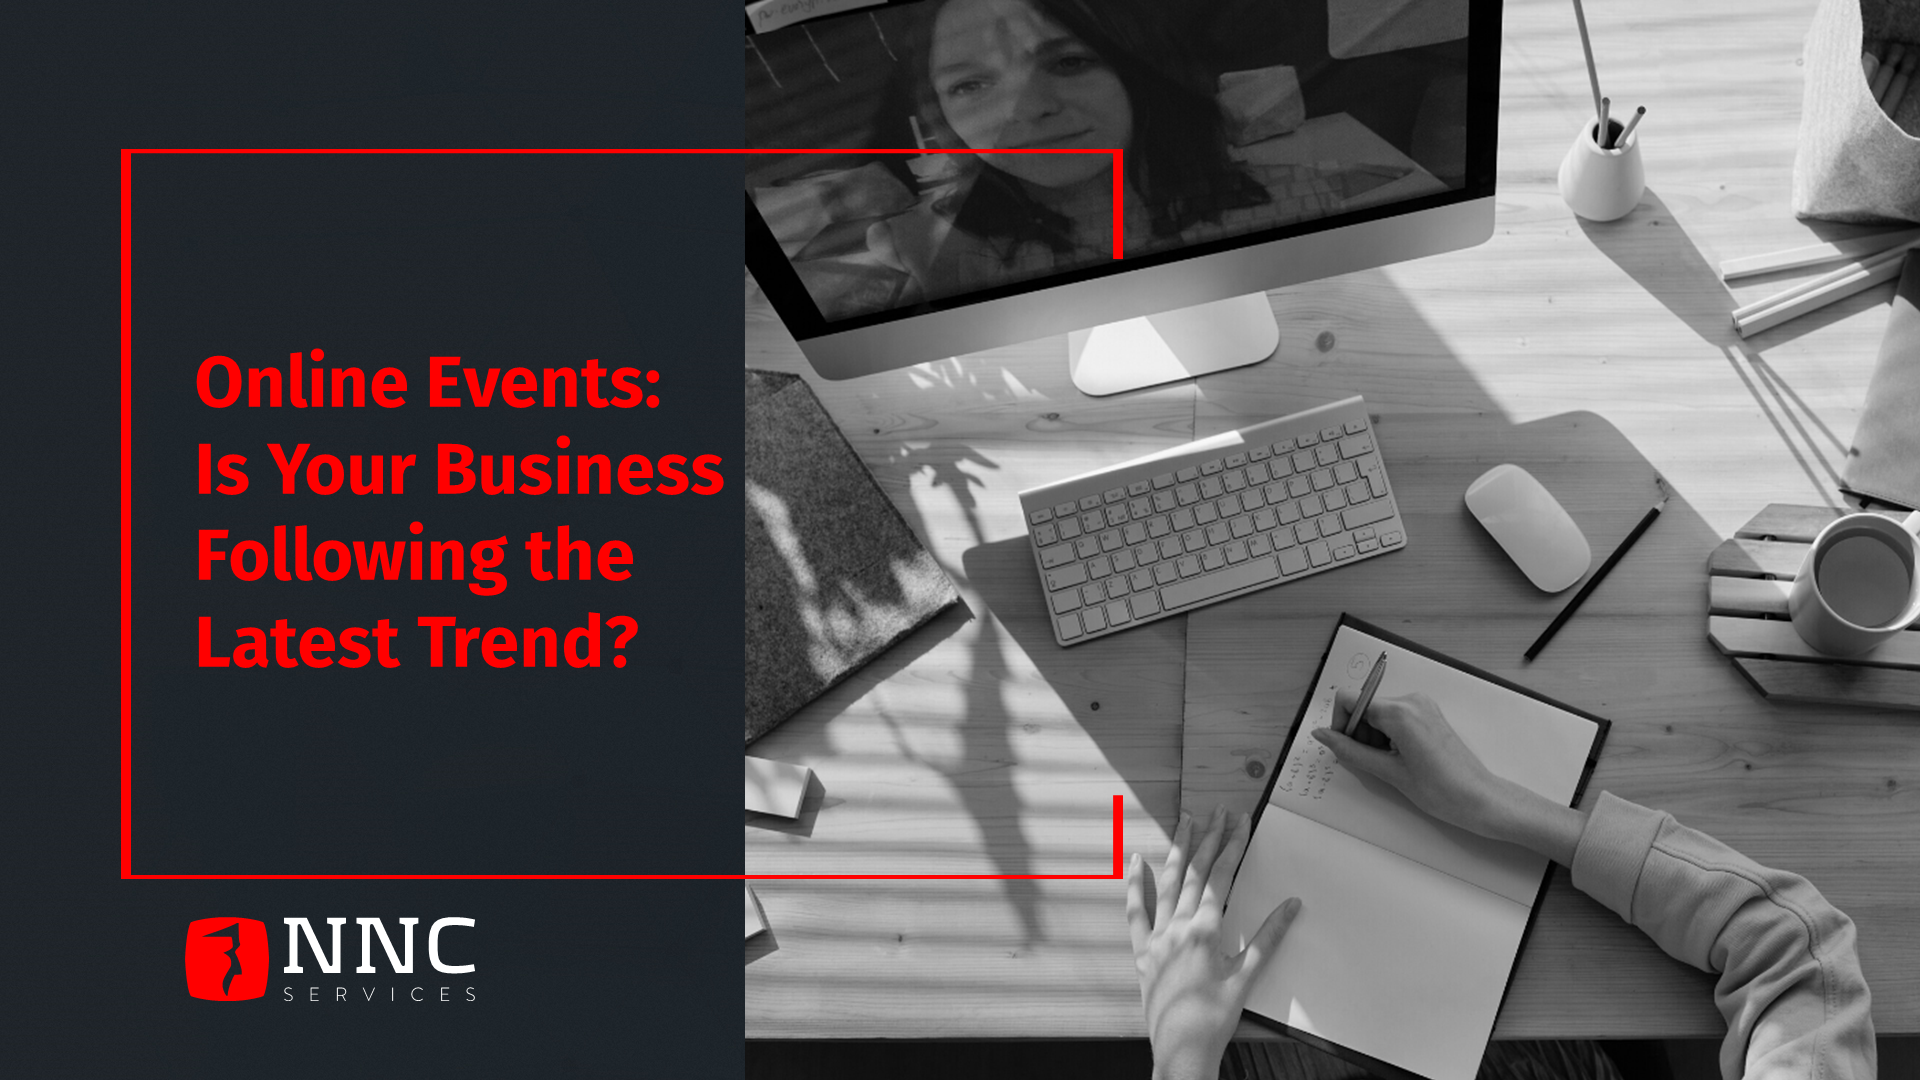 NNC Services Online Events for business promotion